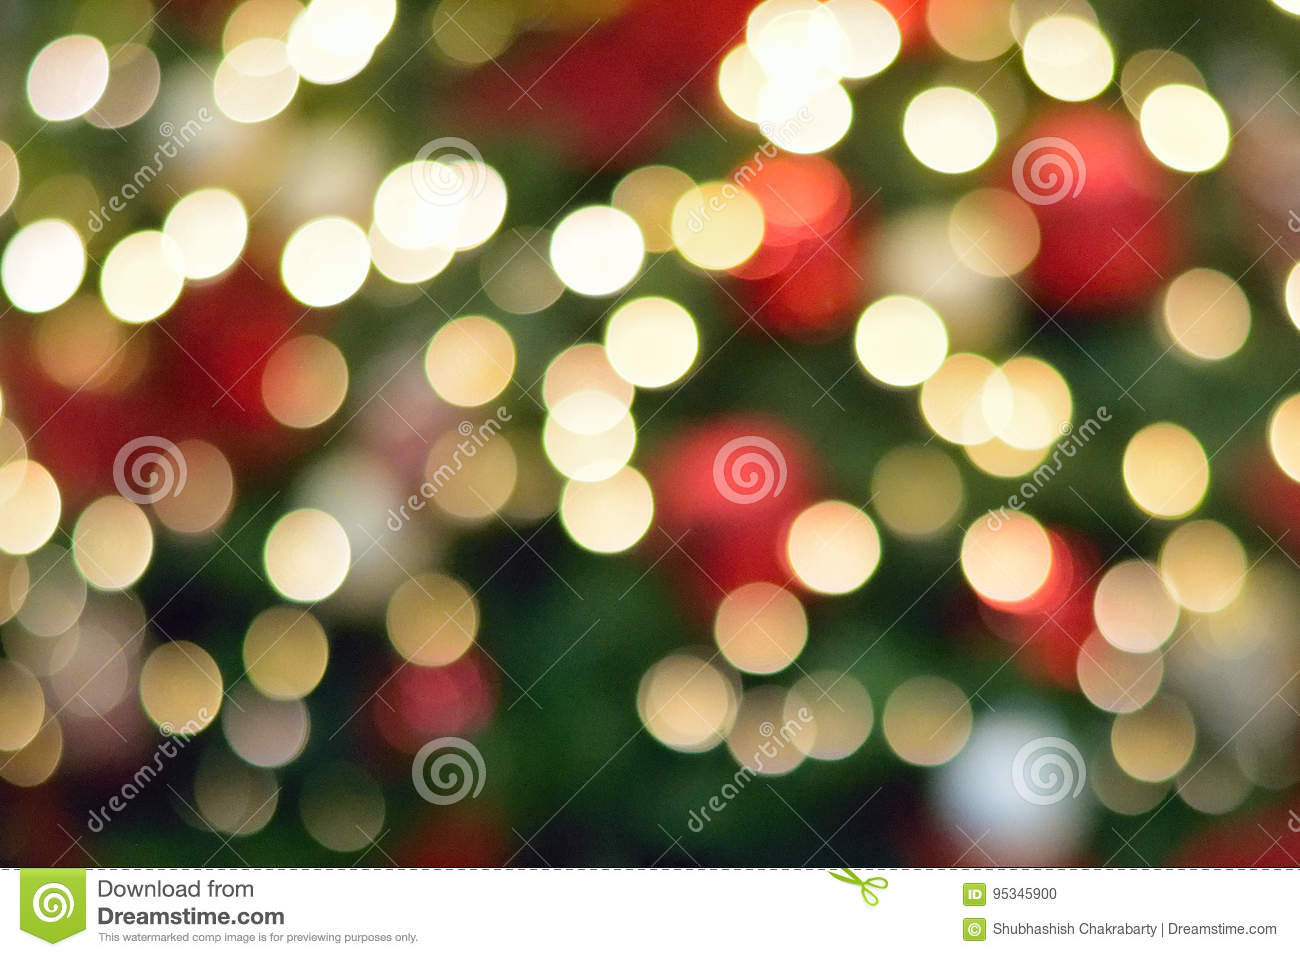 Colorful Christmas Lights Background.Abstract Texture Of Colorful Christmas Lights Background